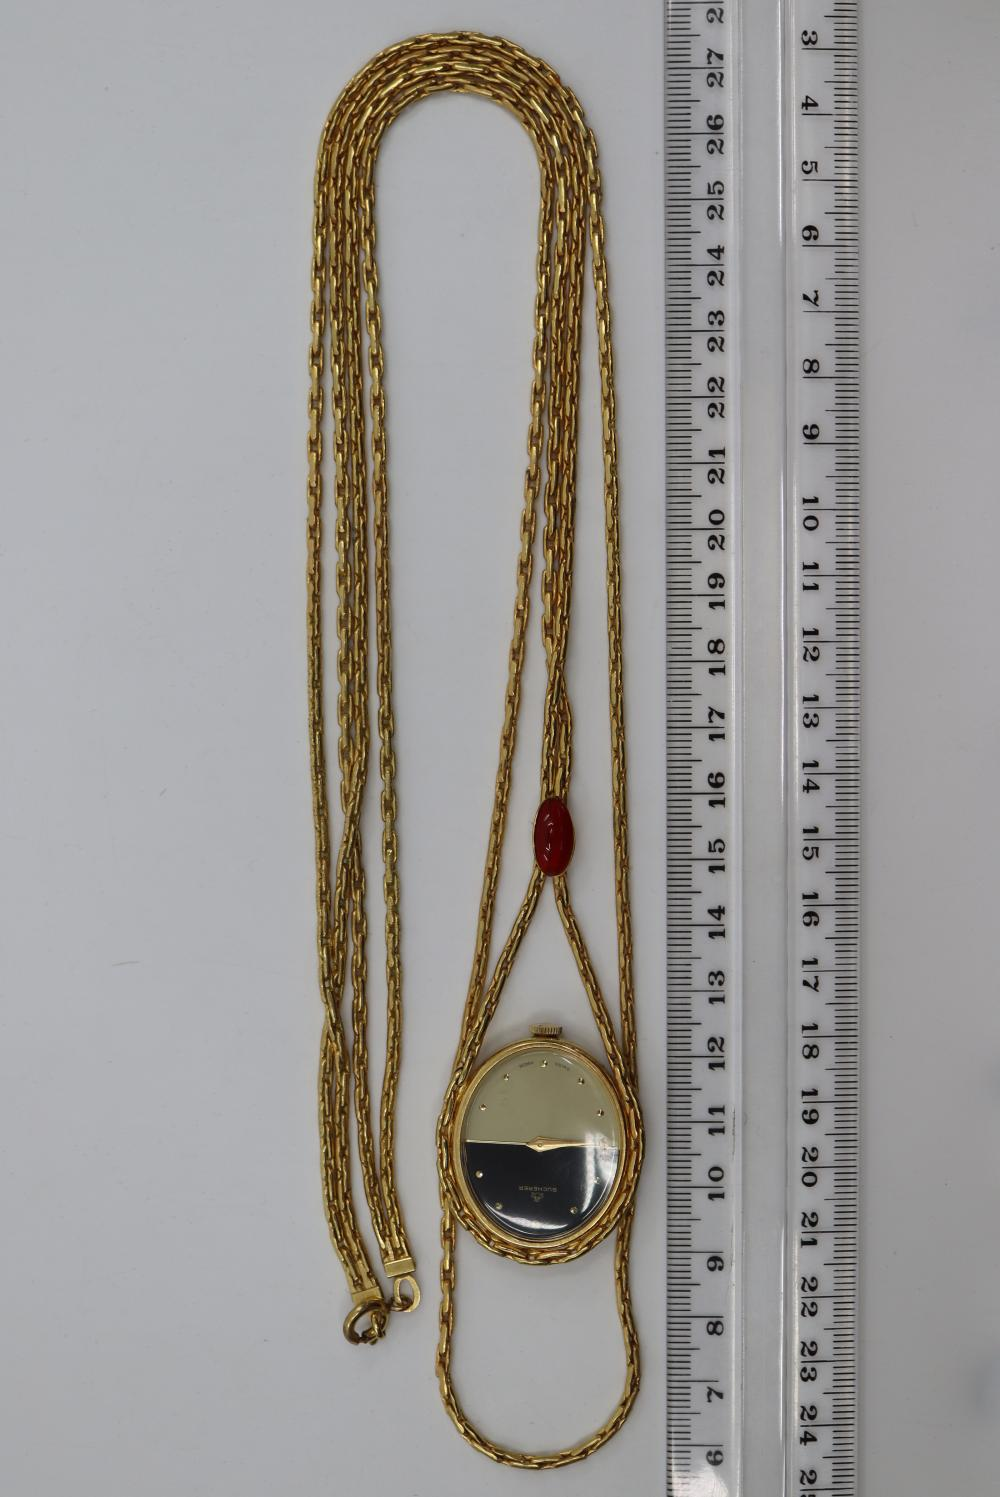 LADIES BUCHERER SWISS MADE WATCH ON A DOUBLE LONG CHAIN IN BLACK CASE